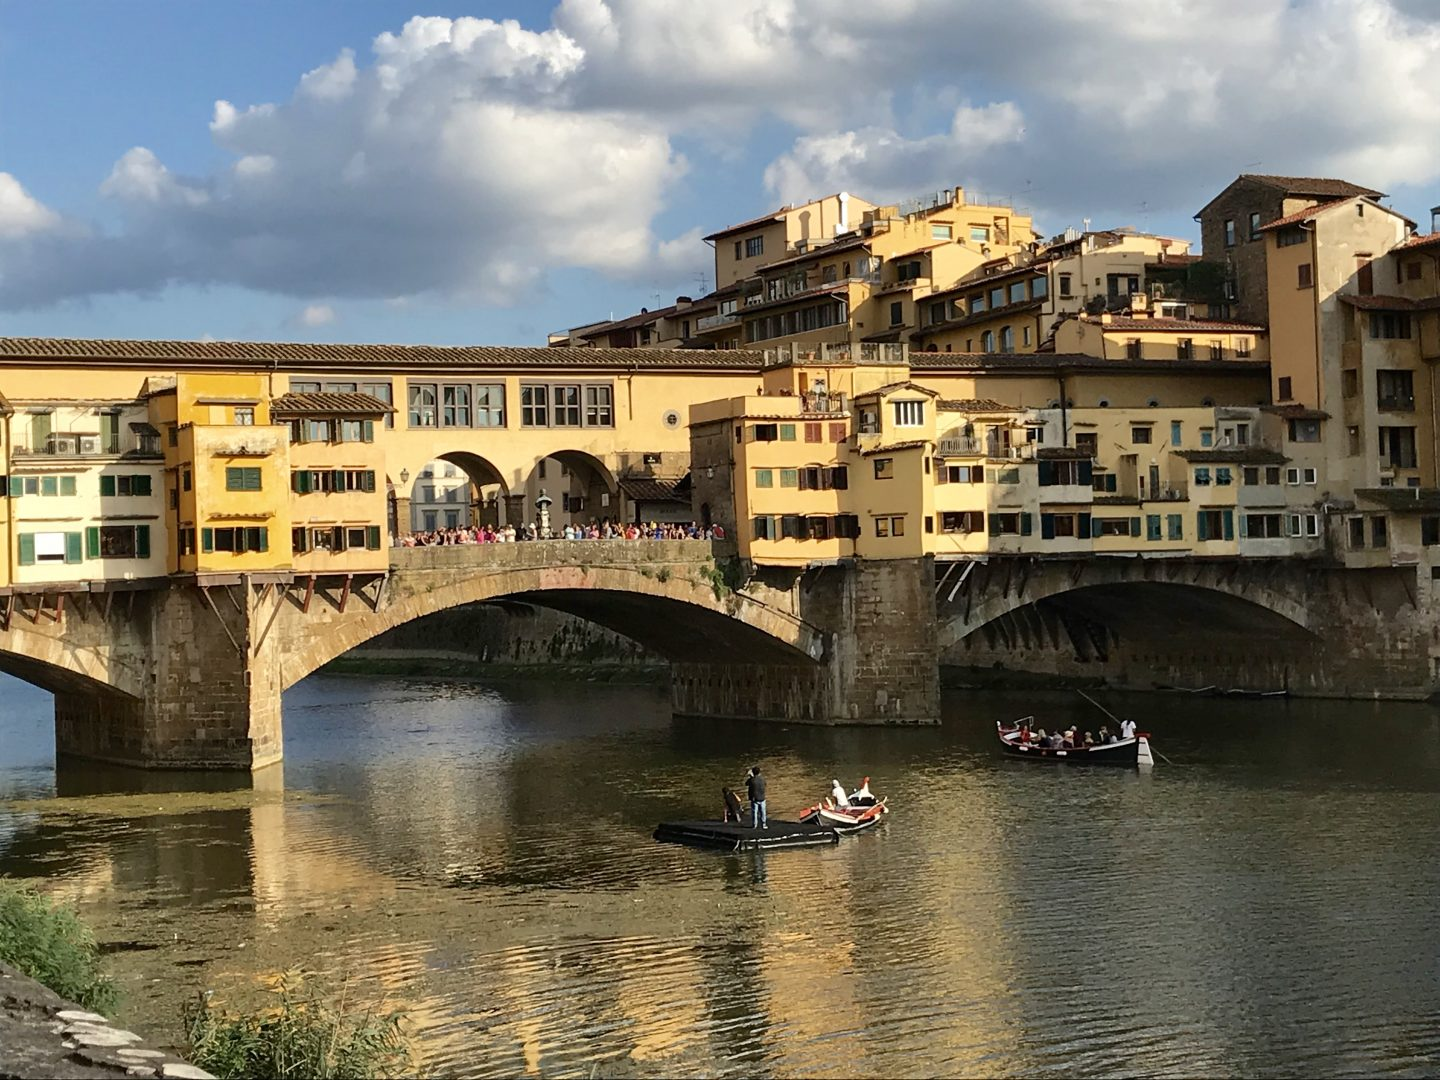 The Florence Guide - ByMeryl